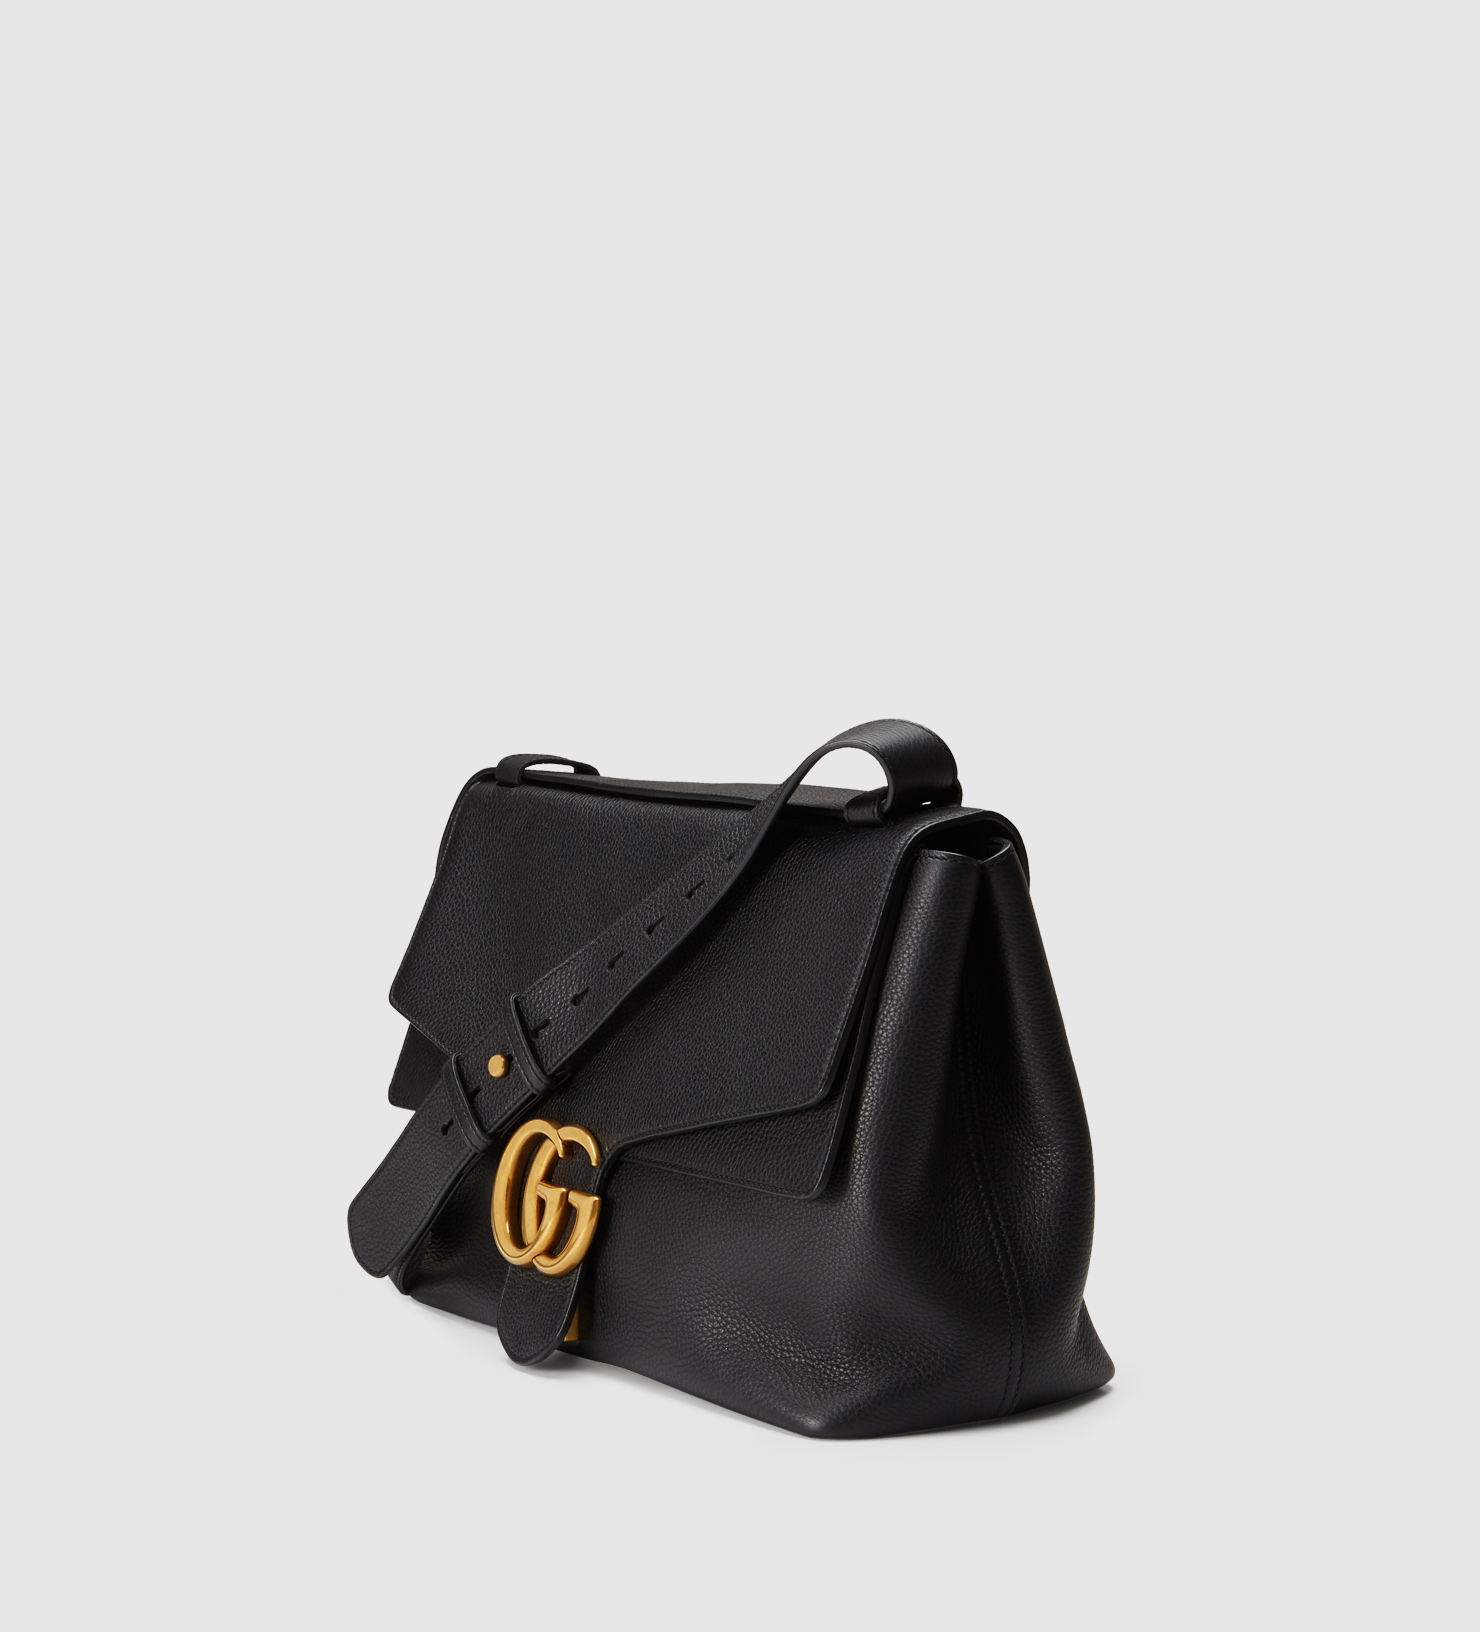 bd3dbe44eec Lyst - Gucci Gg Marmont Leather Shoulder Bag in Black